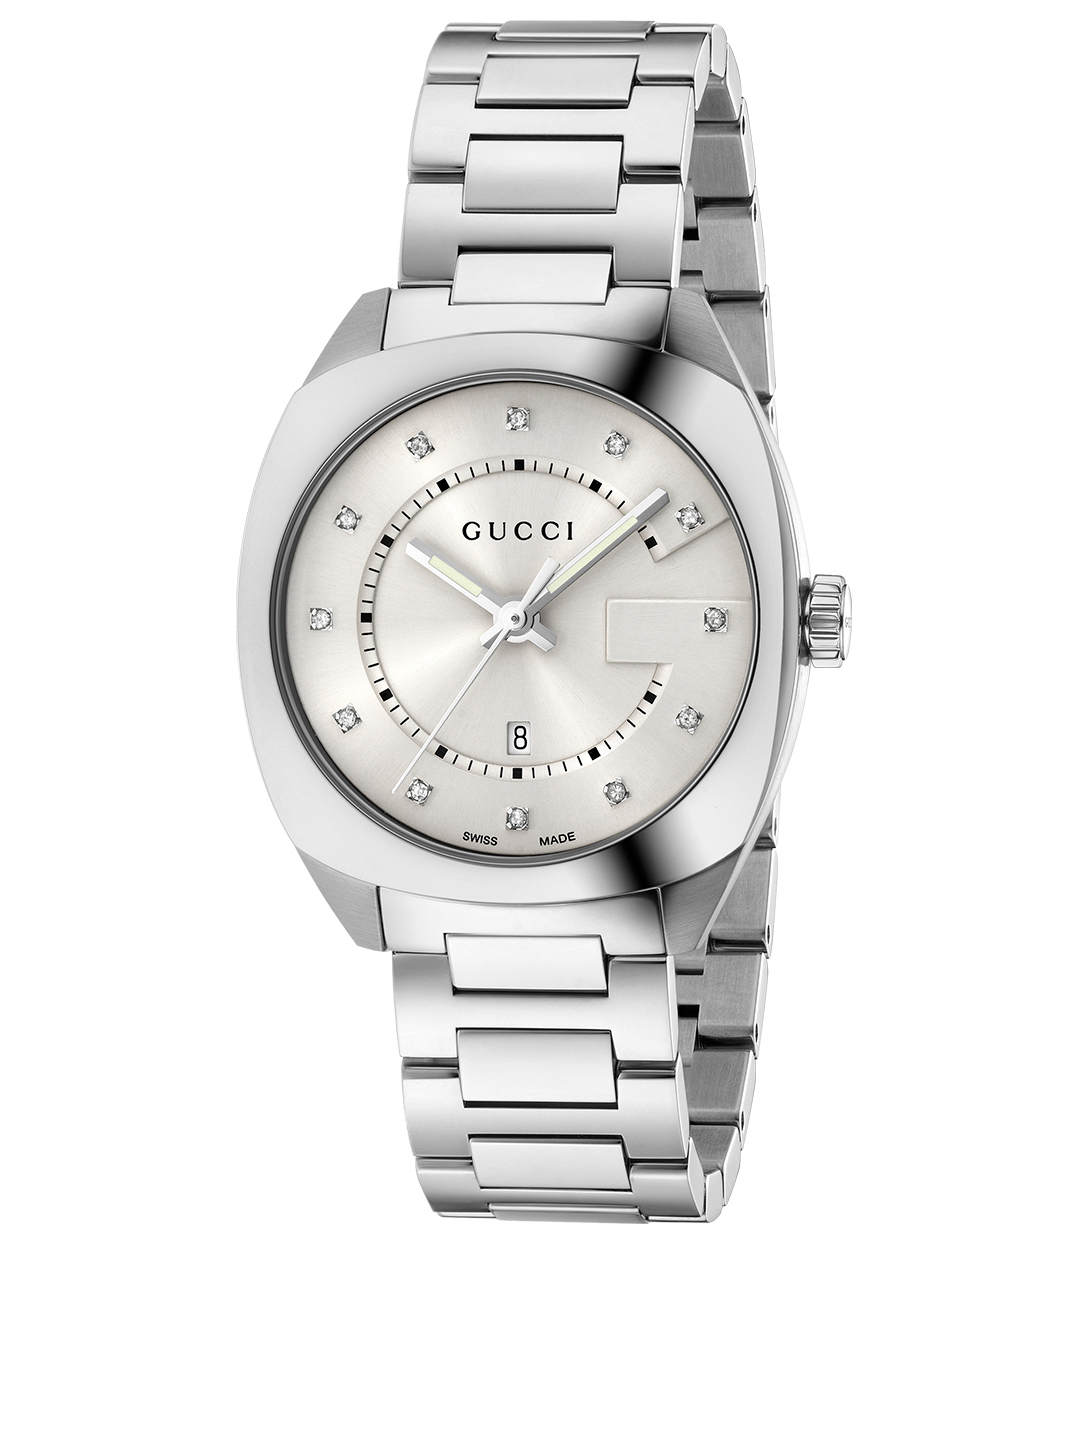 ab39fef1636 GUCCI Stainless Steel Bracelet Watch With Diamonds Women s Silver ...